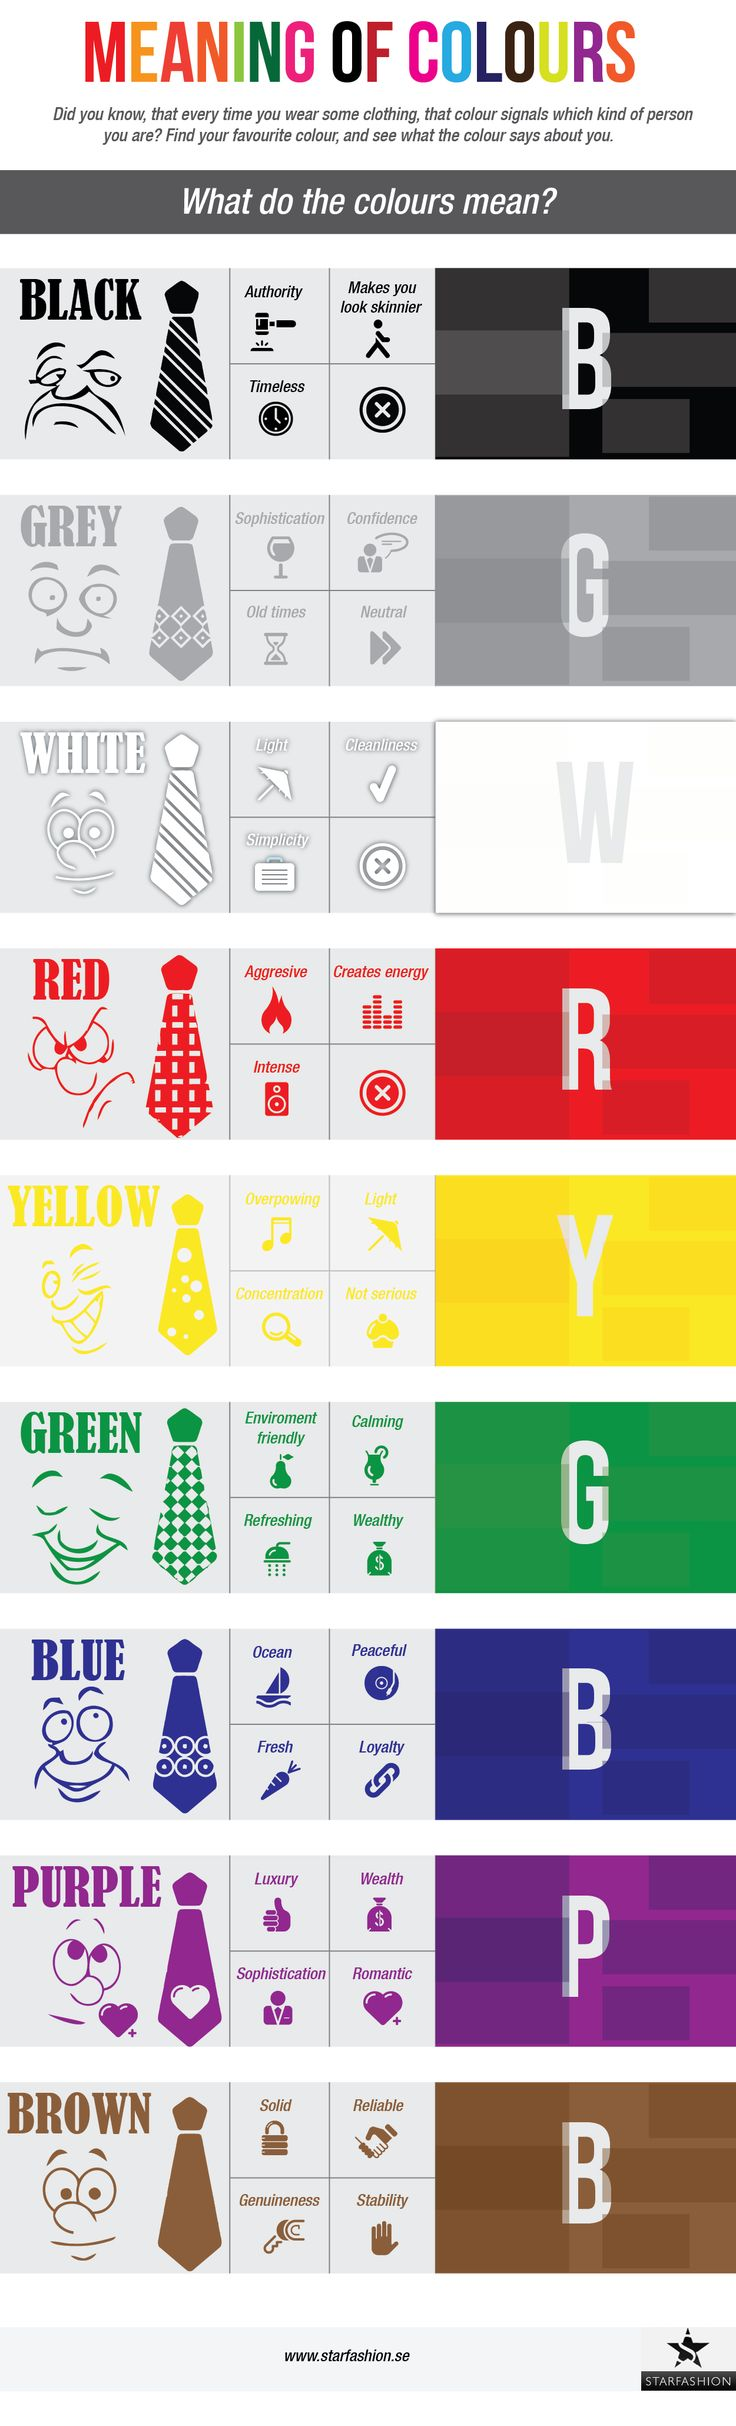 What The Color Of Your Clothing Says About You #Infographic